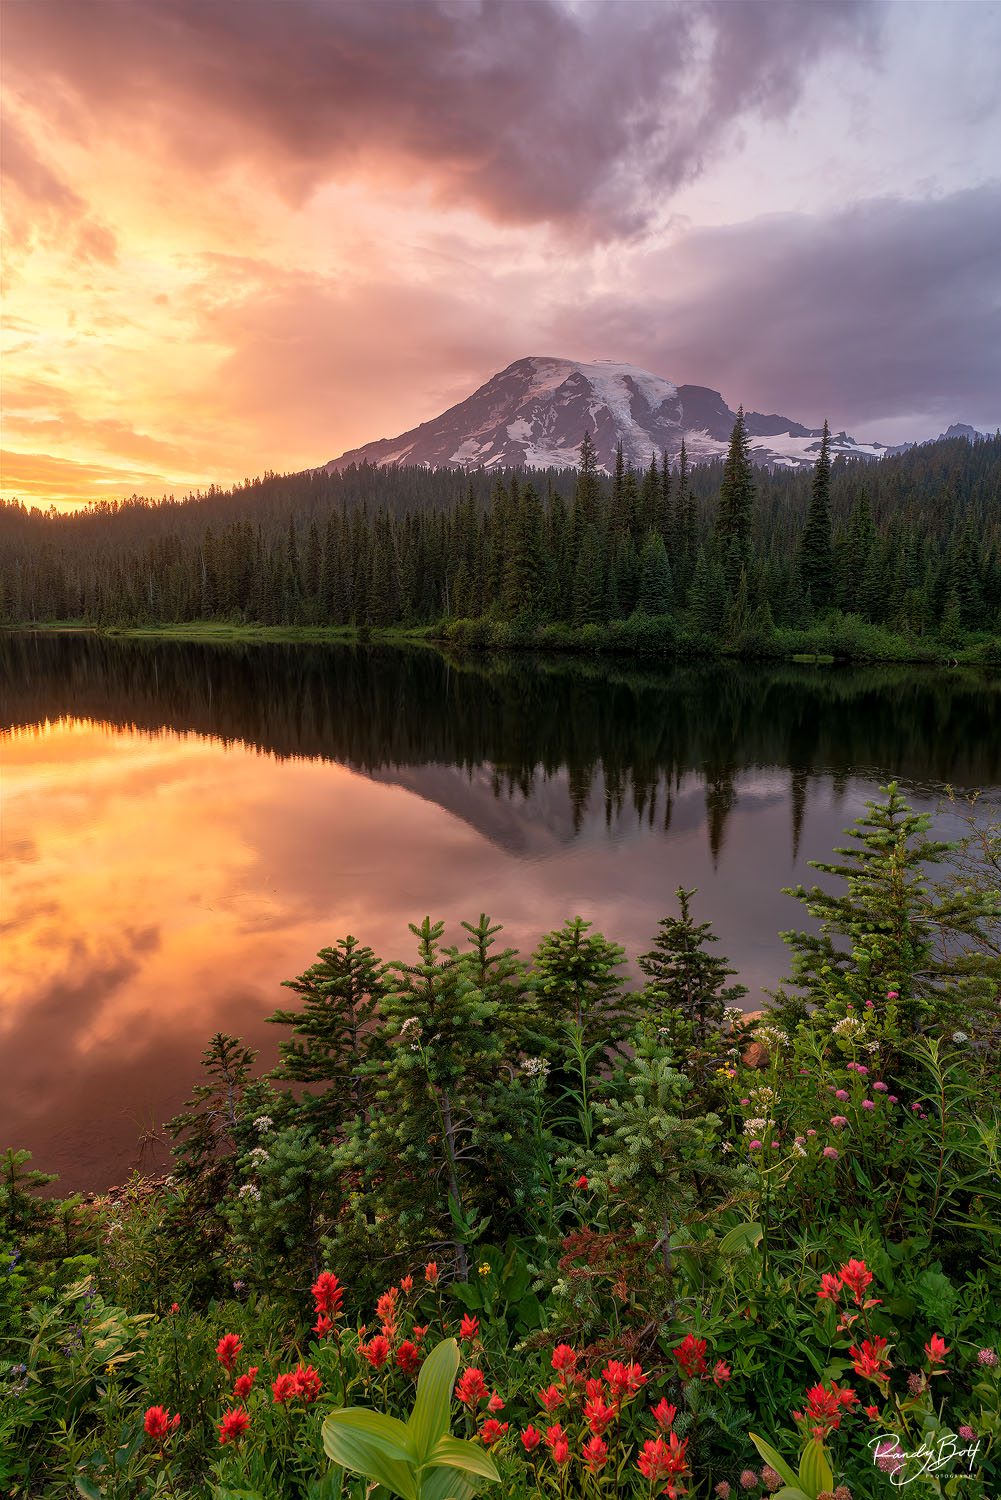 Sunset with mount rainier and Indian paintbrush at reflection lakes in mount rainier national park.